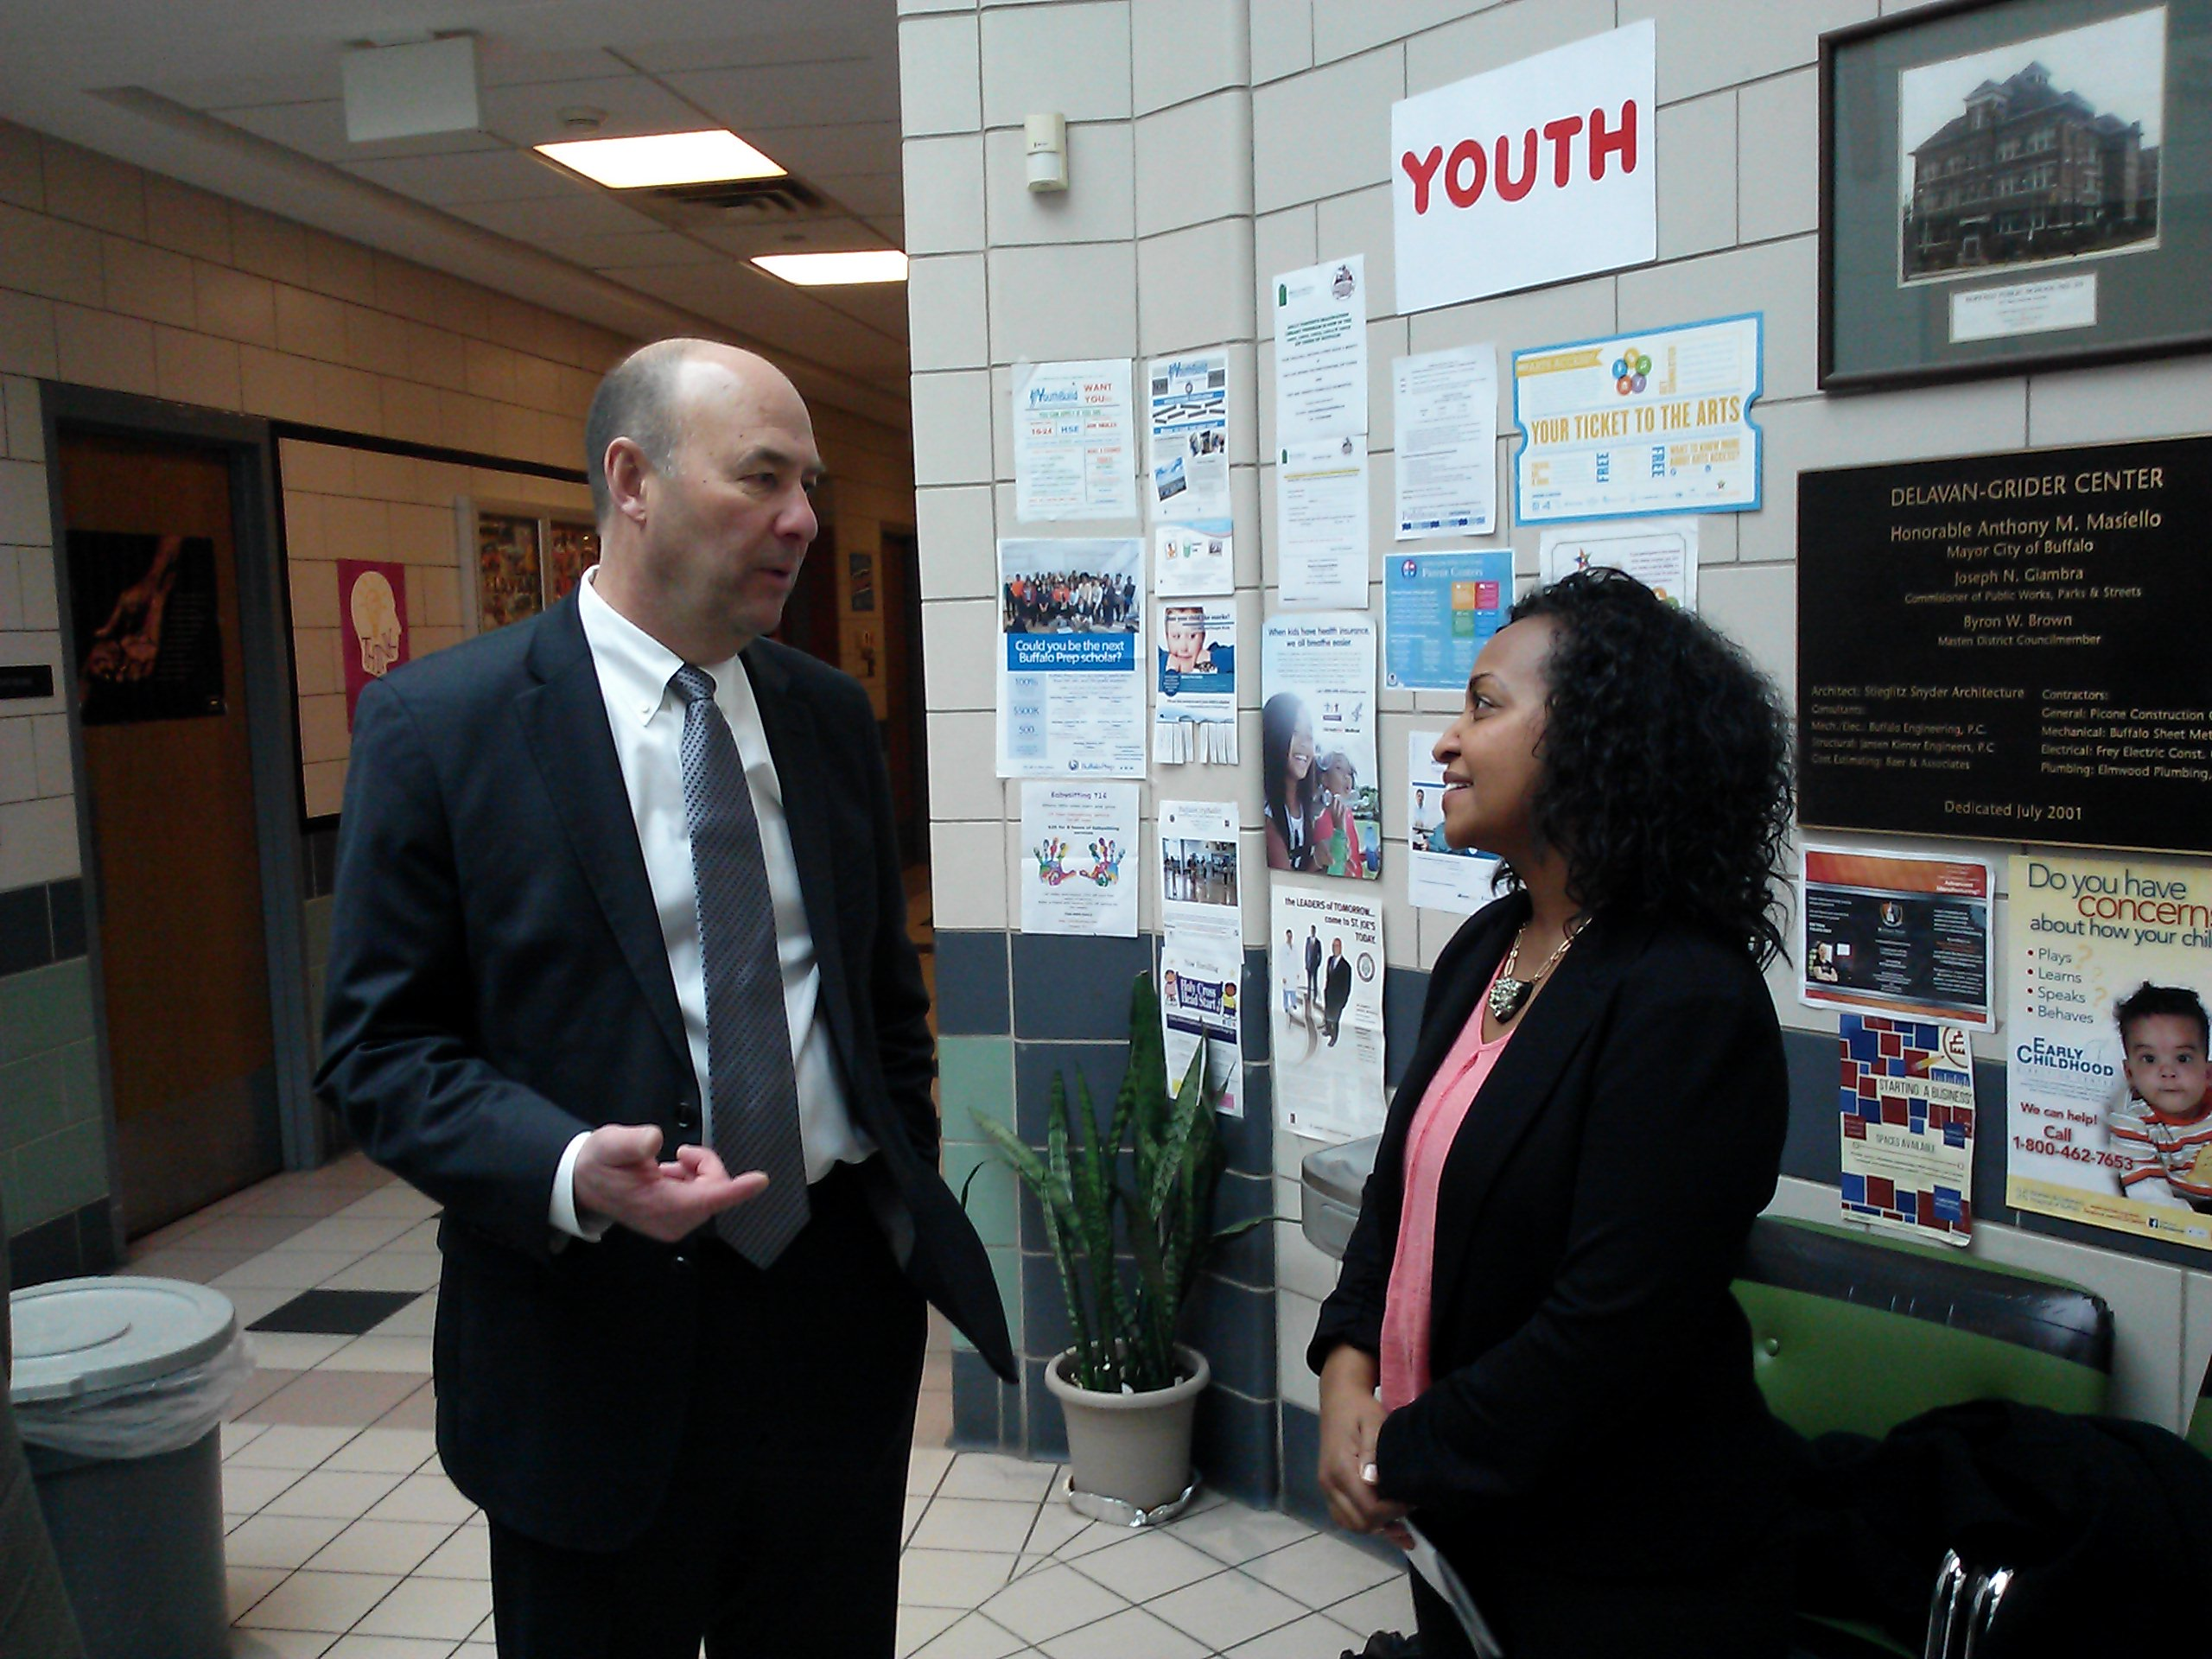 Northwest Bank chairman, pres. and CEO William Wagner talks with Rahwa Ghirmatzion, deputy director of PUSH Buffalo.